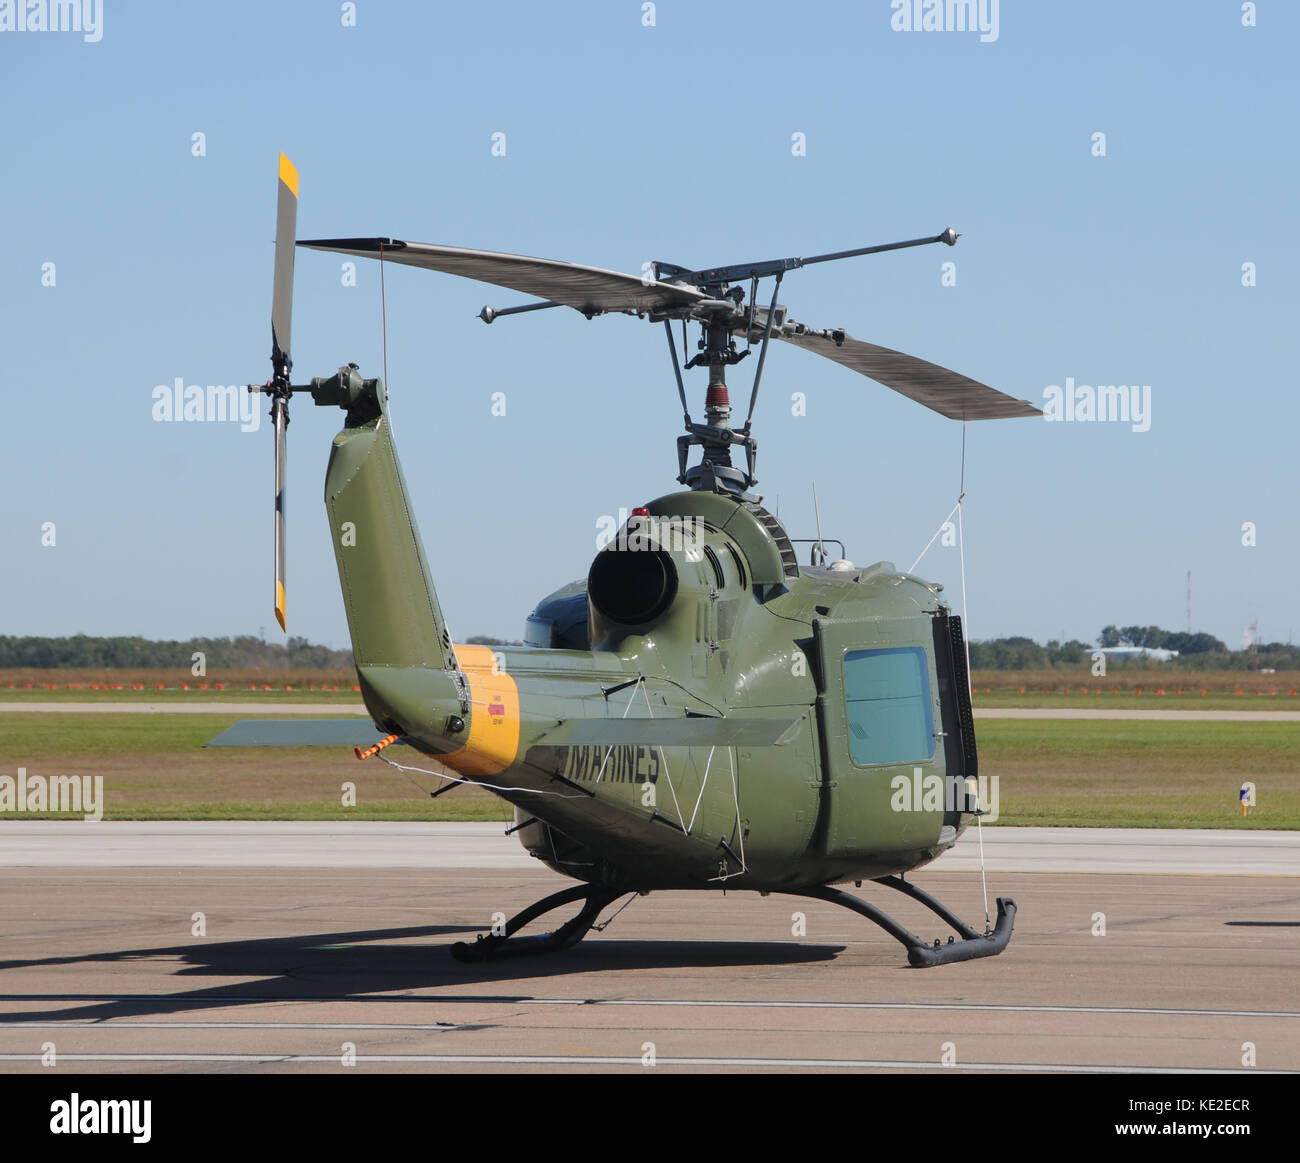 Vietnam War era military helicopter on the ground Stock